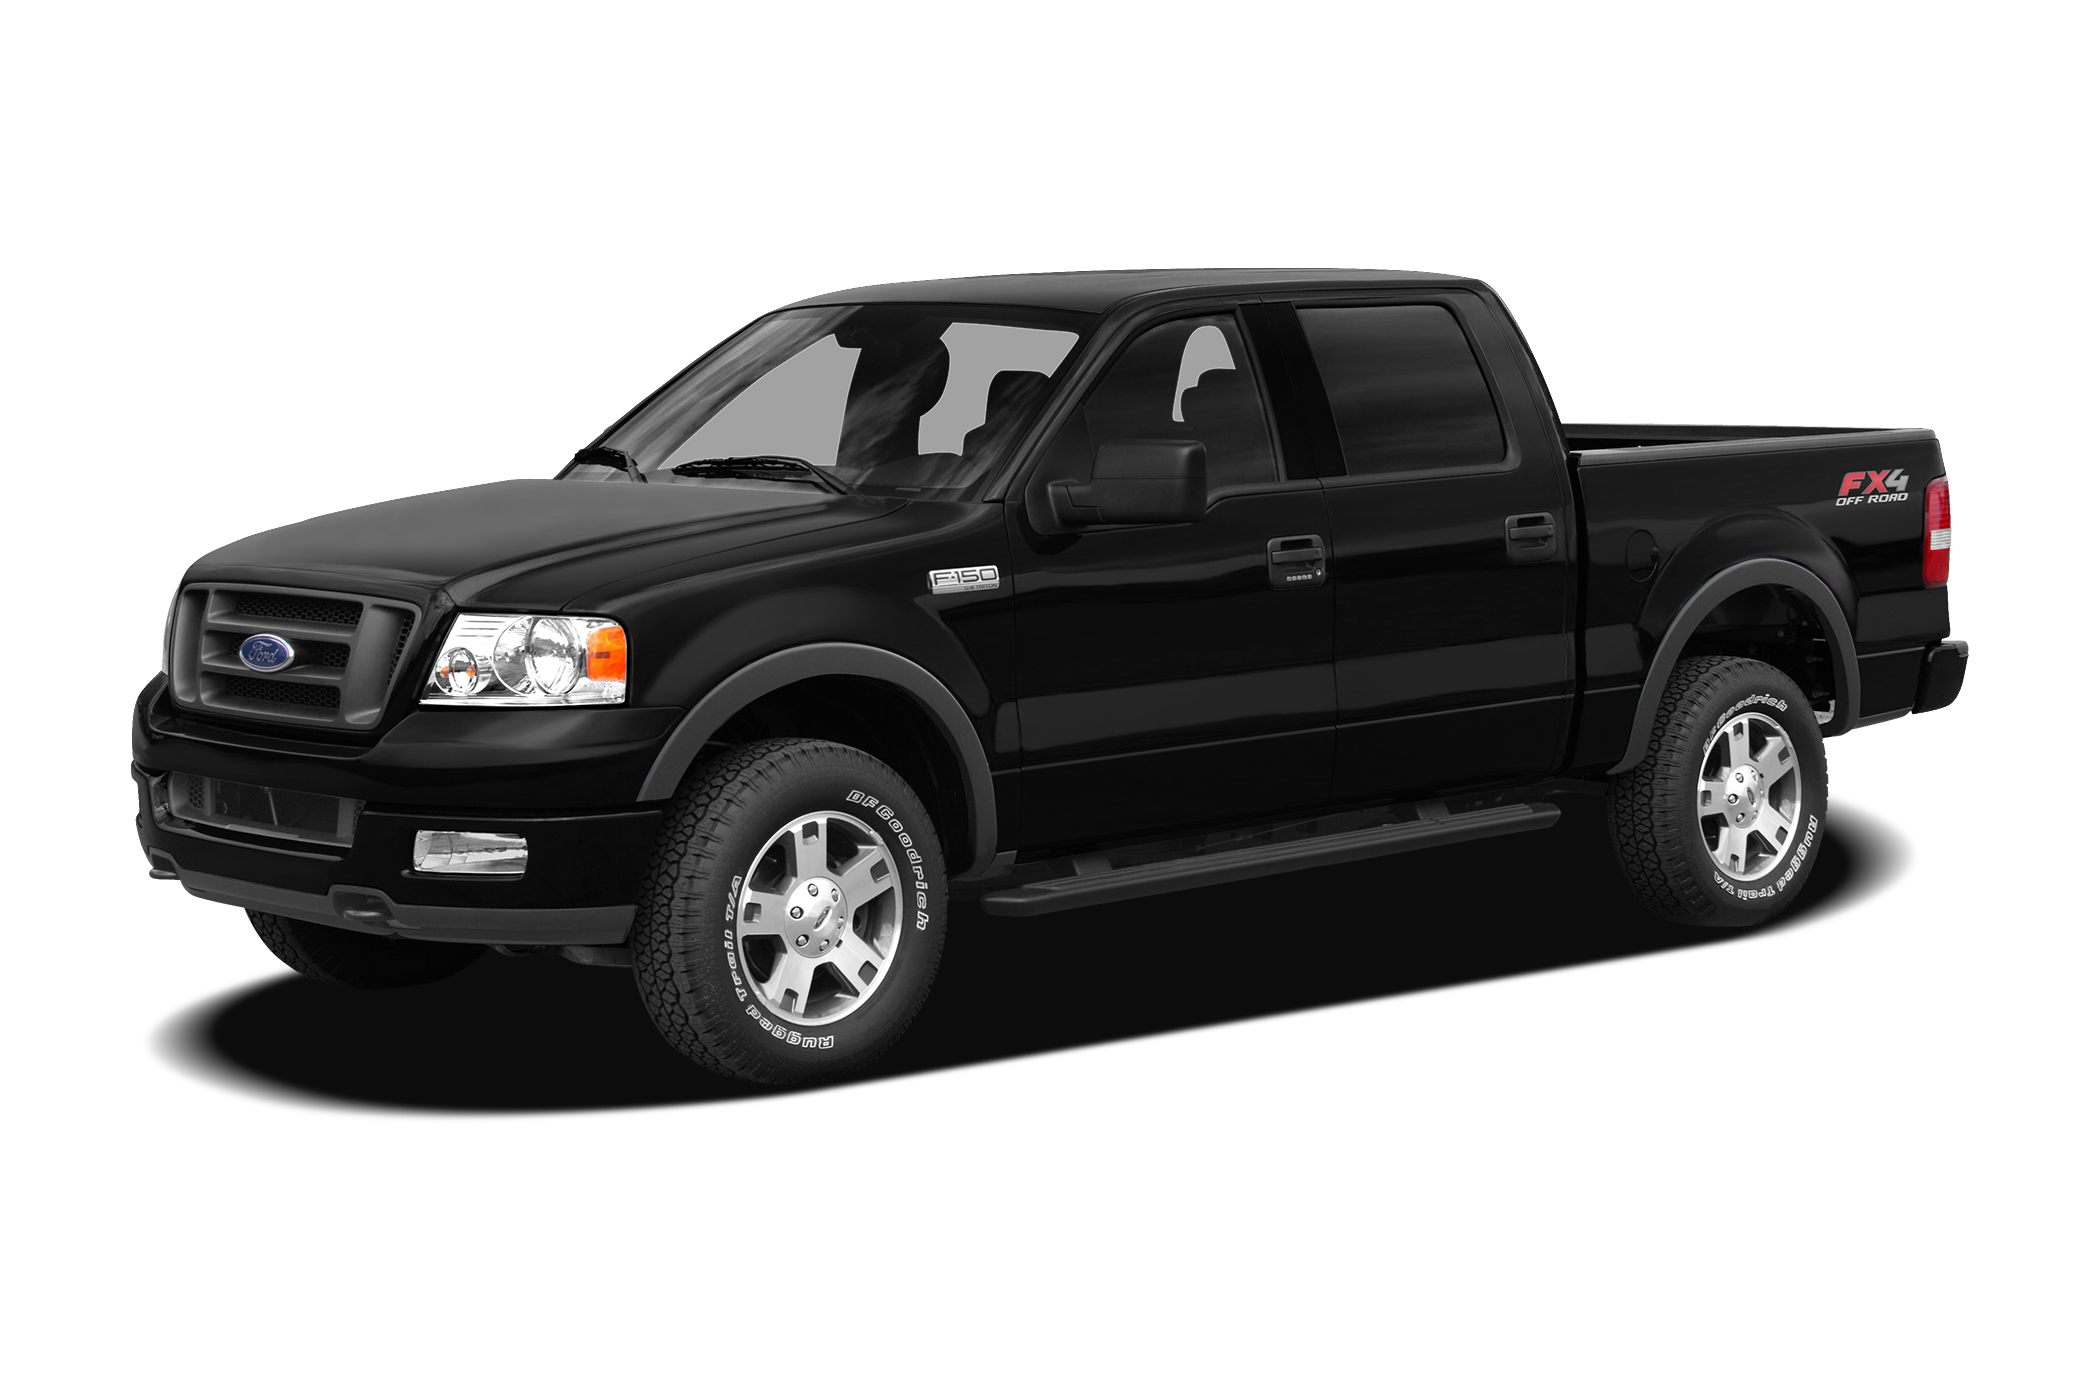 2008 Ford F-150 XLT XLT trim Consumer Guide Recommended Pickup CD Player Fourth Passenger Door